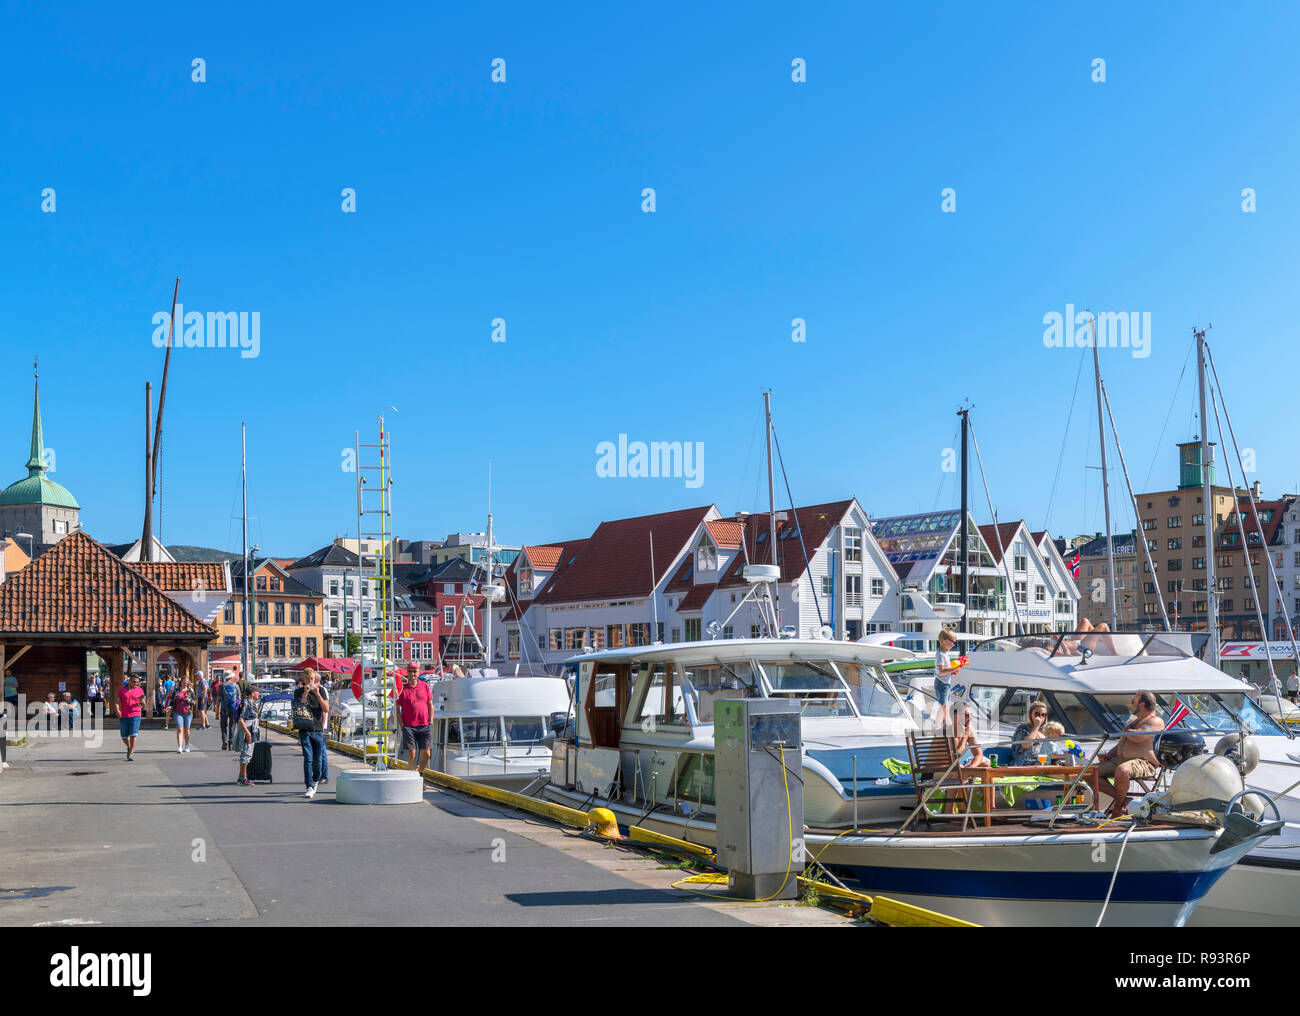 Cabin cruisers and yachts in Vagen harbour, Bergen, Hordaland, Norway - Stock Image